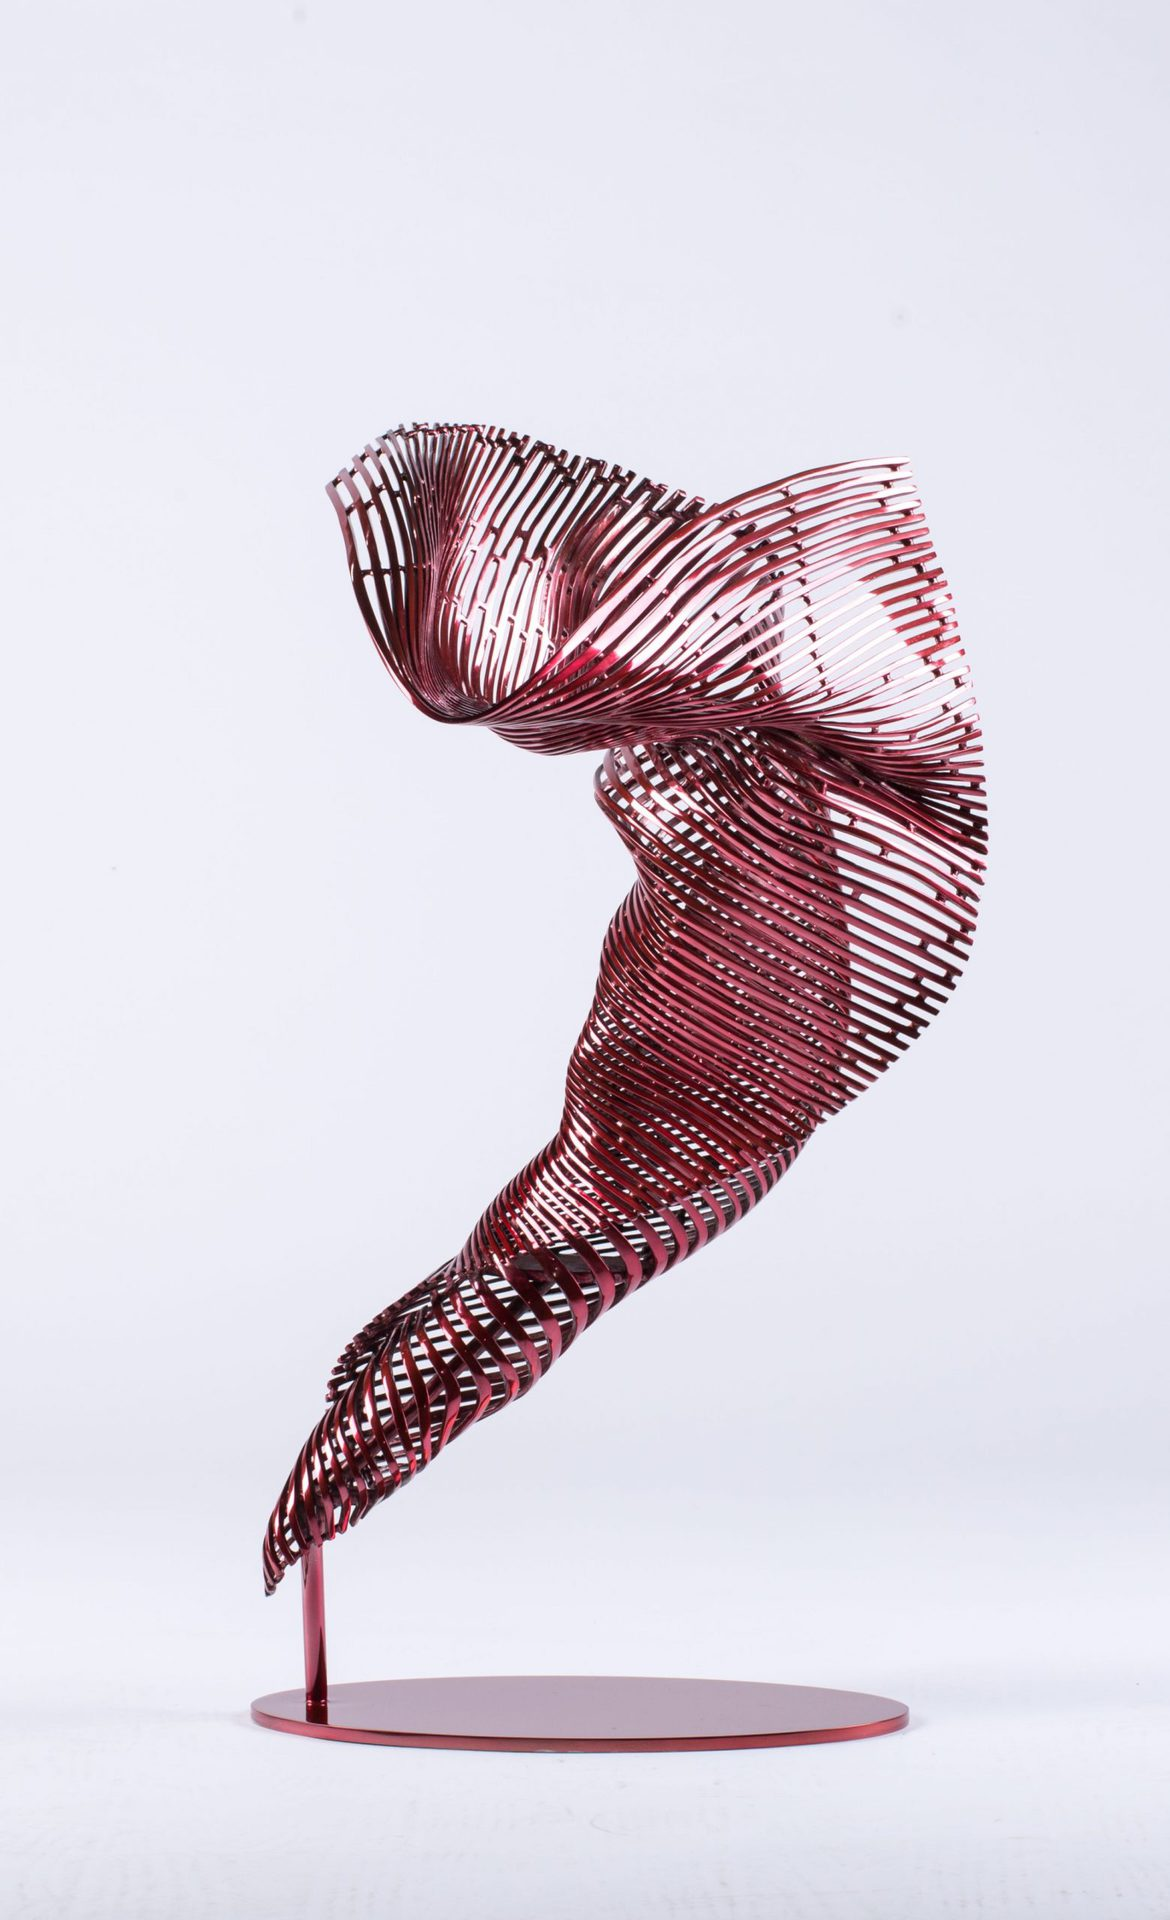 'I Am-Dancer', stainless steel, red polychrome, 69 x 38 x 39 cm, edition 1 of 12 + 1AP